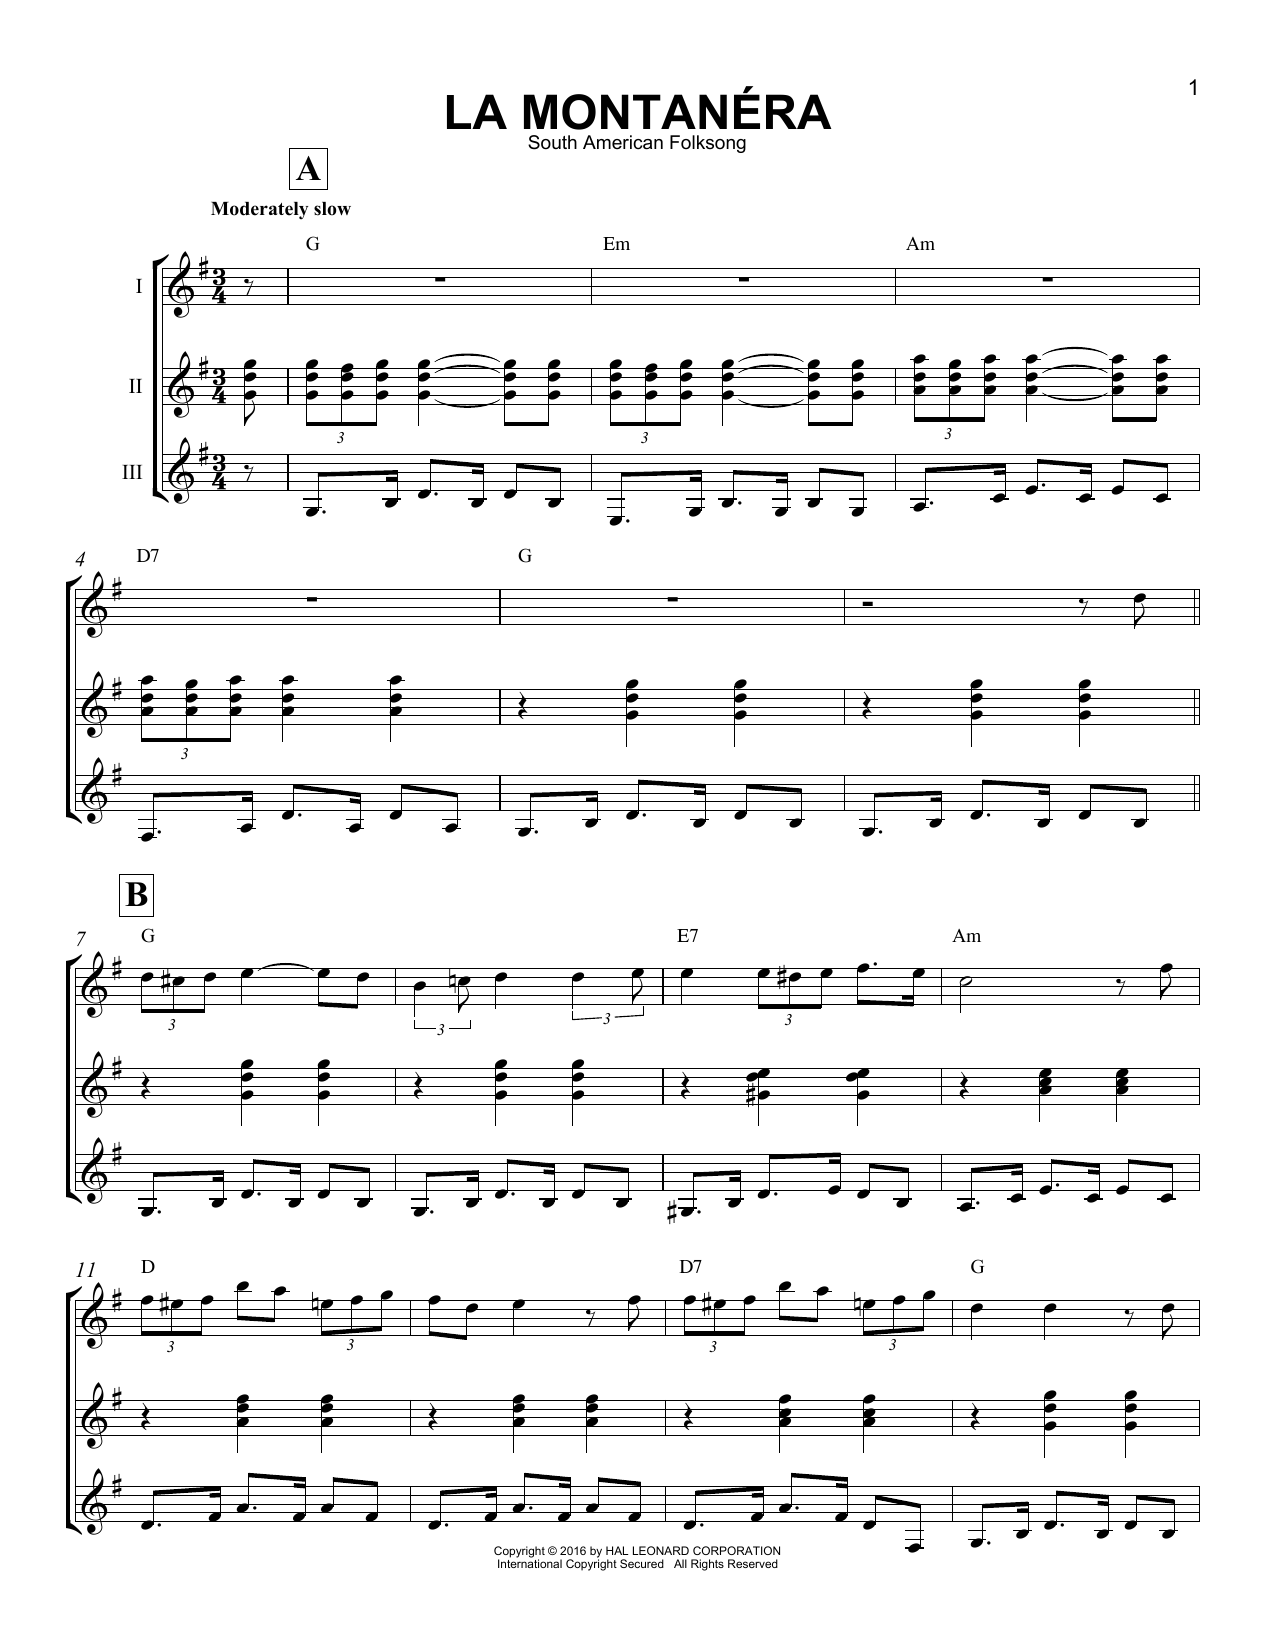 South American Folksong La Montanera sheet music notes and chords - download printable PDF.